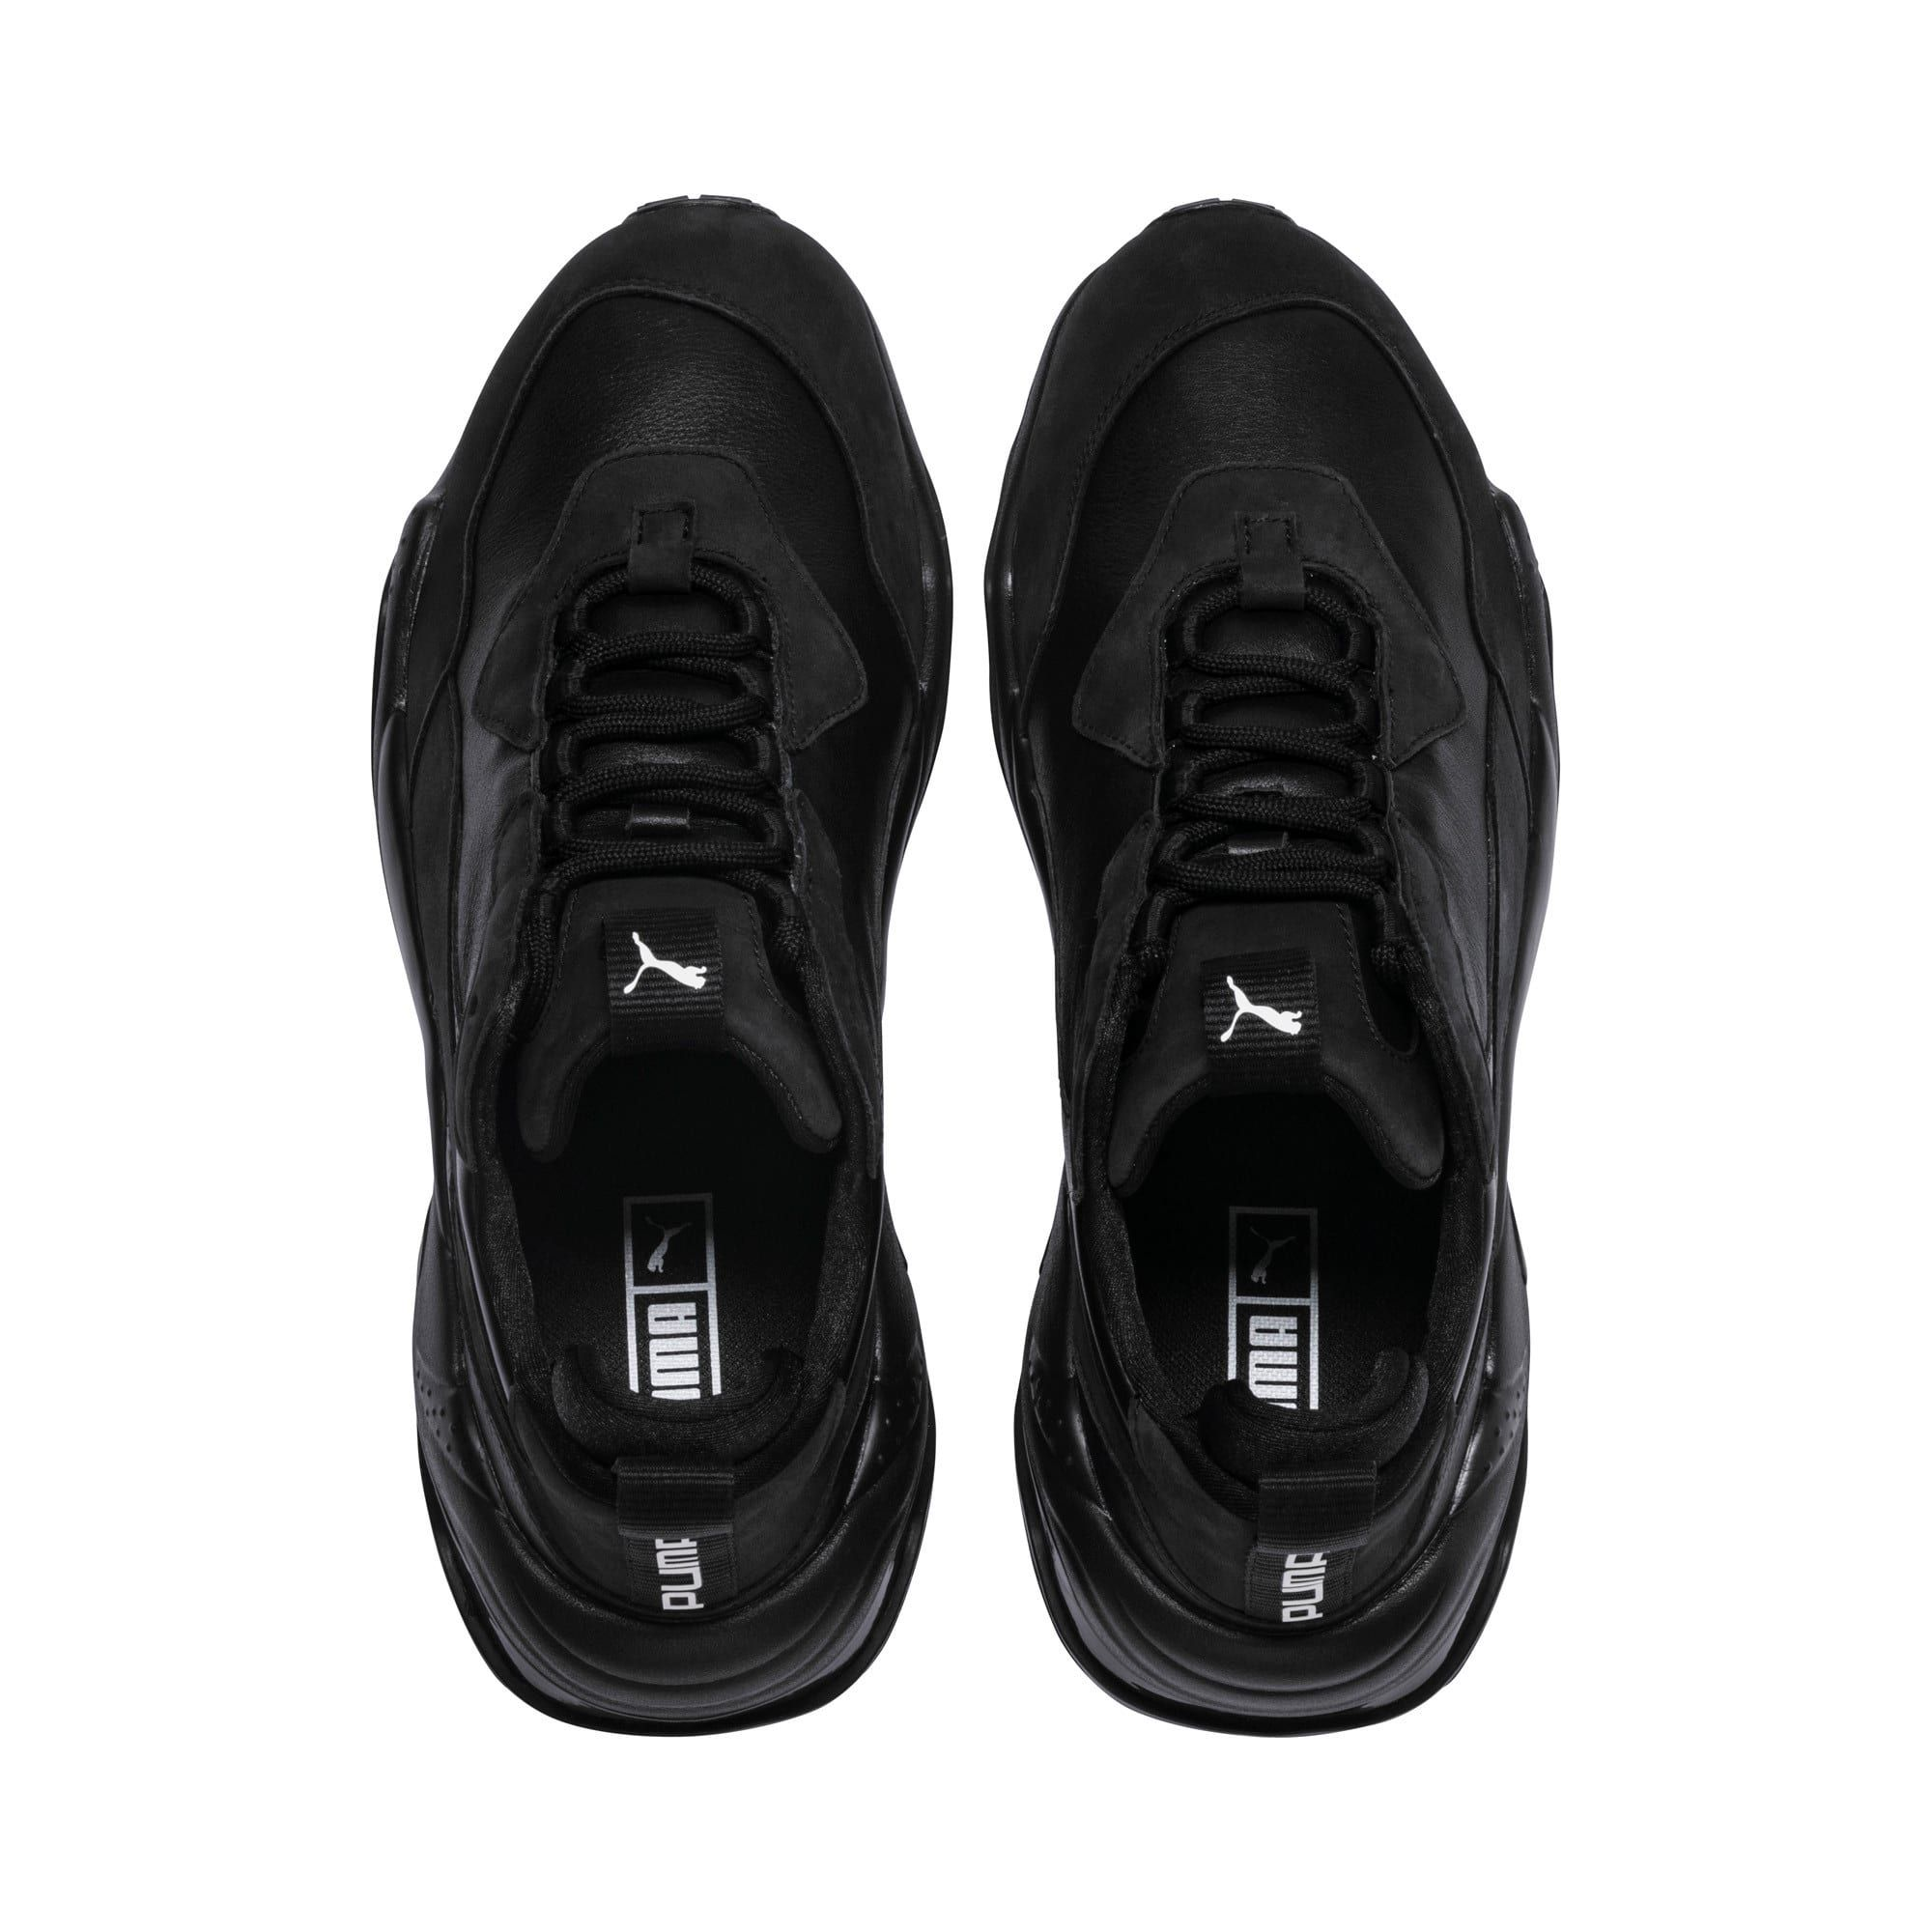 PUMA Thunder Leather Trainers in Black